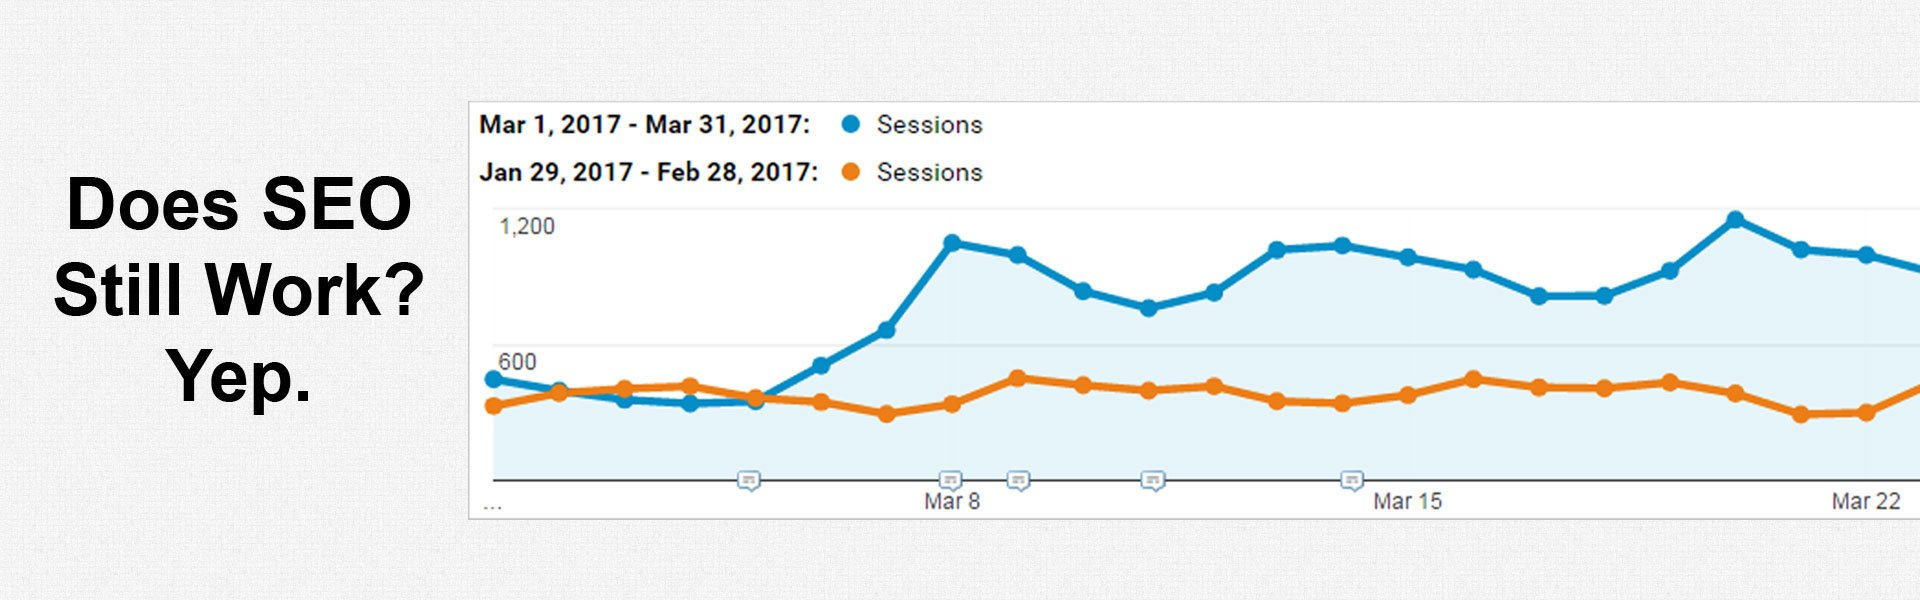 SEO is NOT dead. SEO works great if you know how.